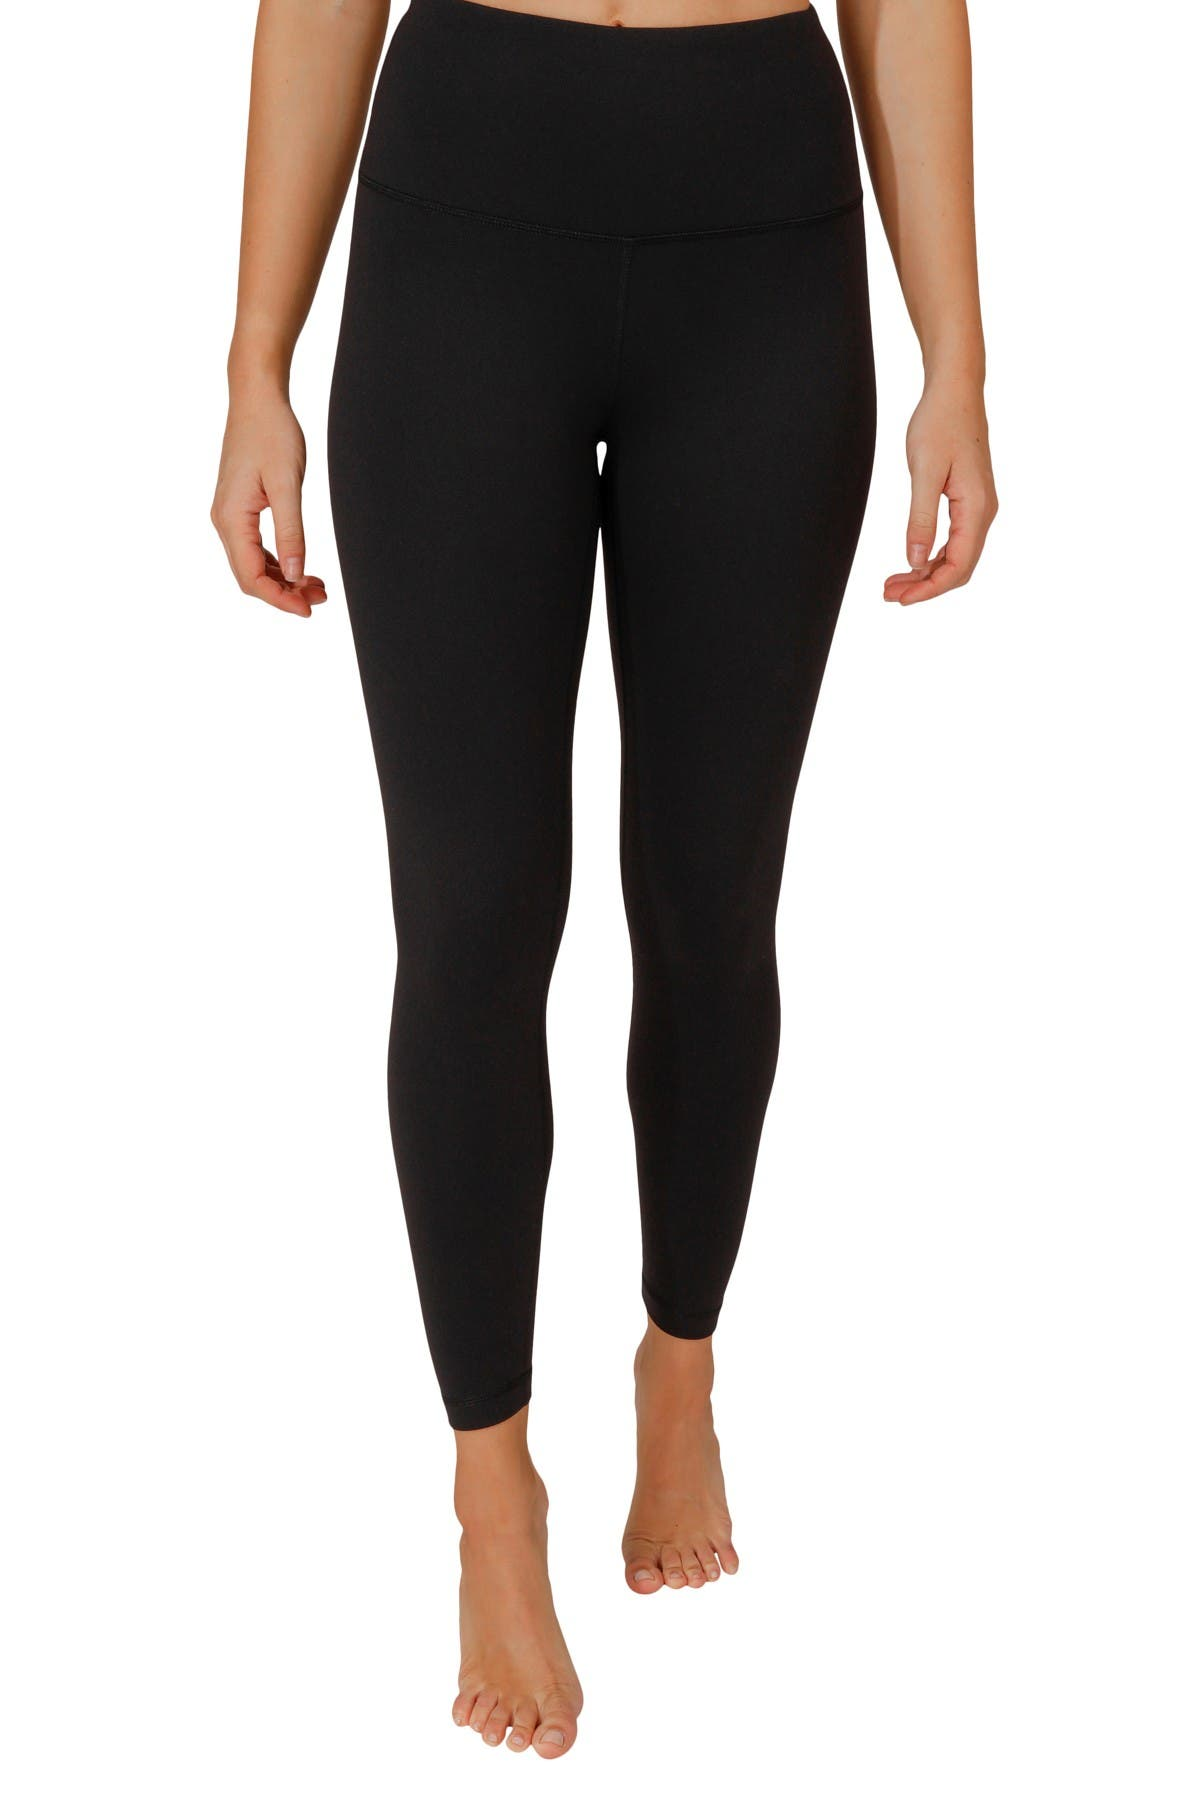 Image of 90 Degree By Reflex Power Flex Fleece Lined High Rise Ankle Legging